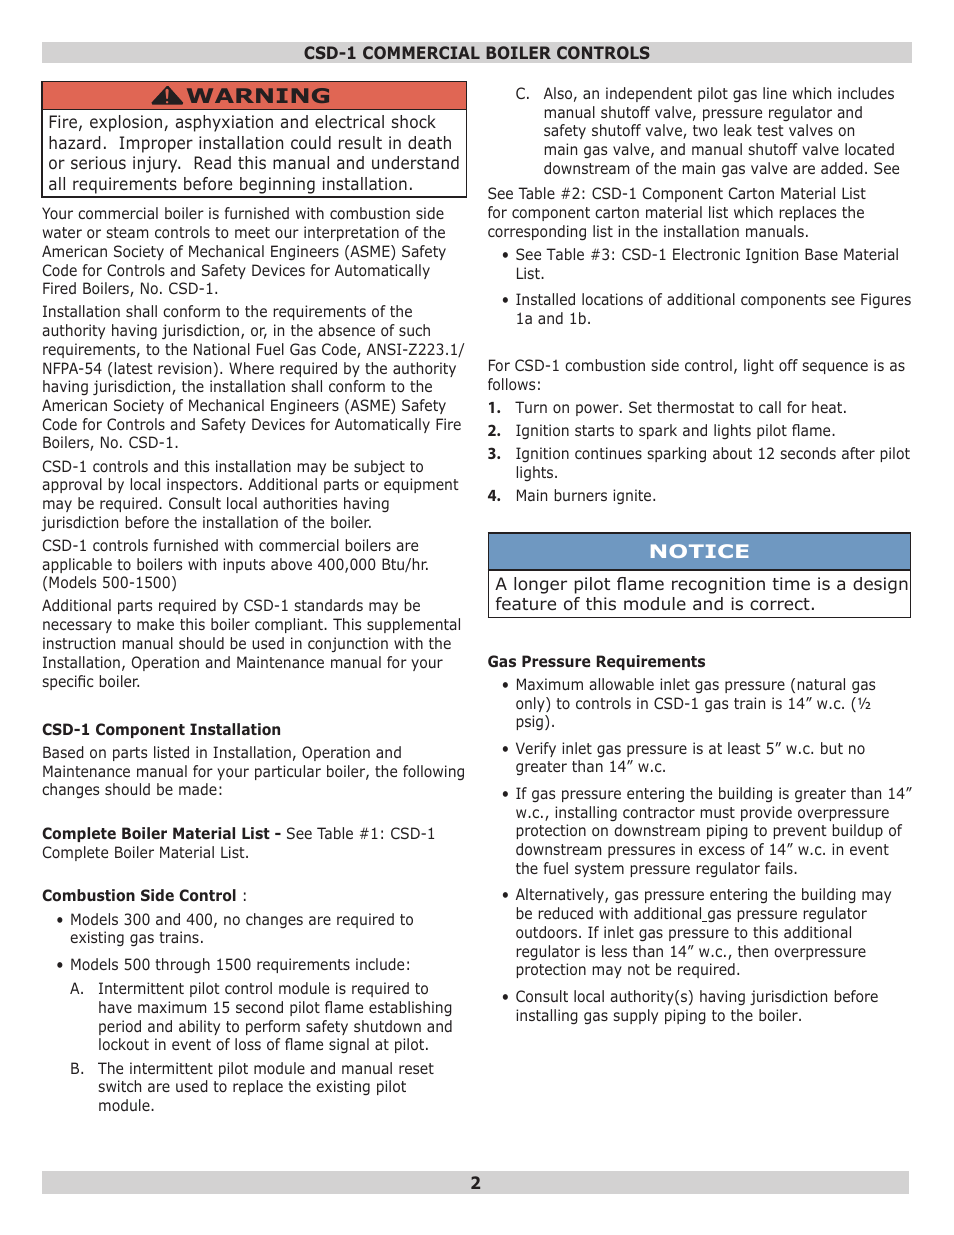 Warning | Dunkirk D249 Series Commercial Boiler User Manual | Page 2 ...